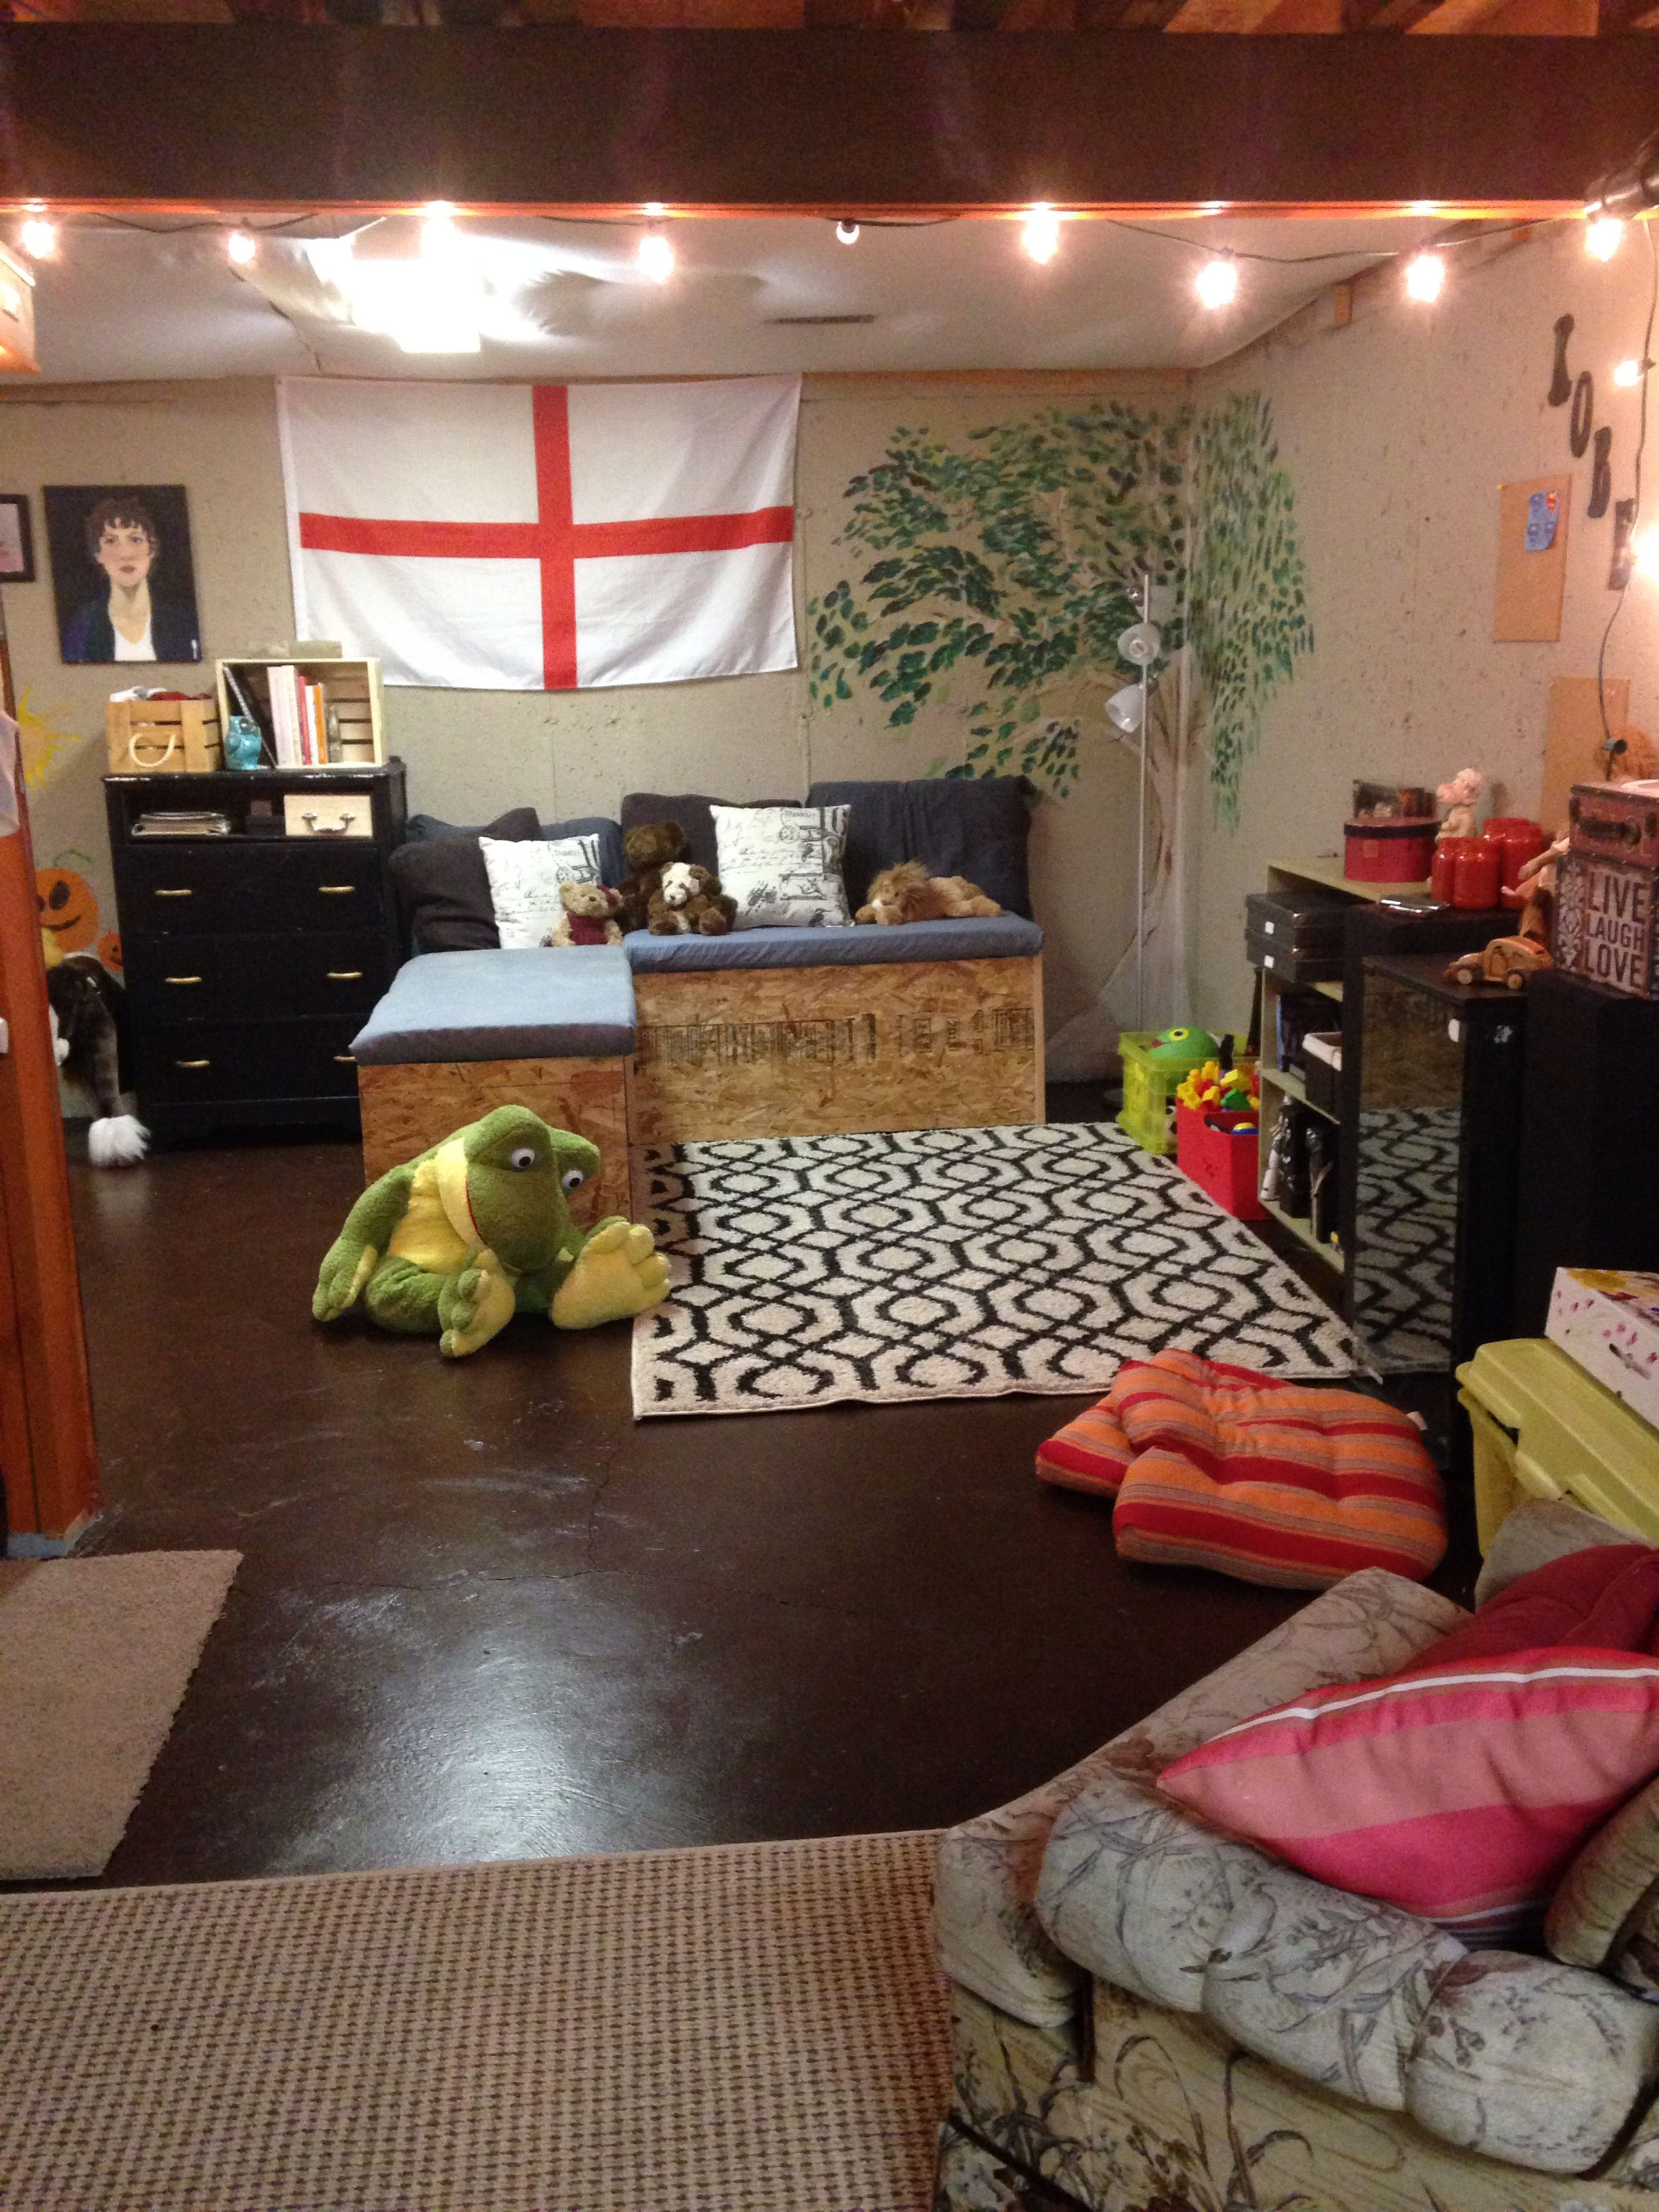 Home made storage benches & area rugs make this basement homie !